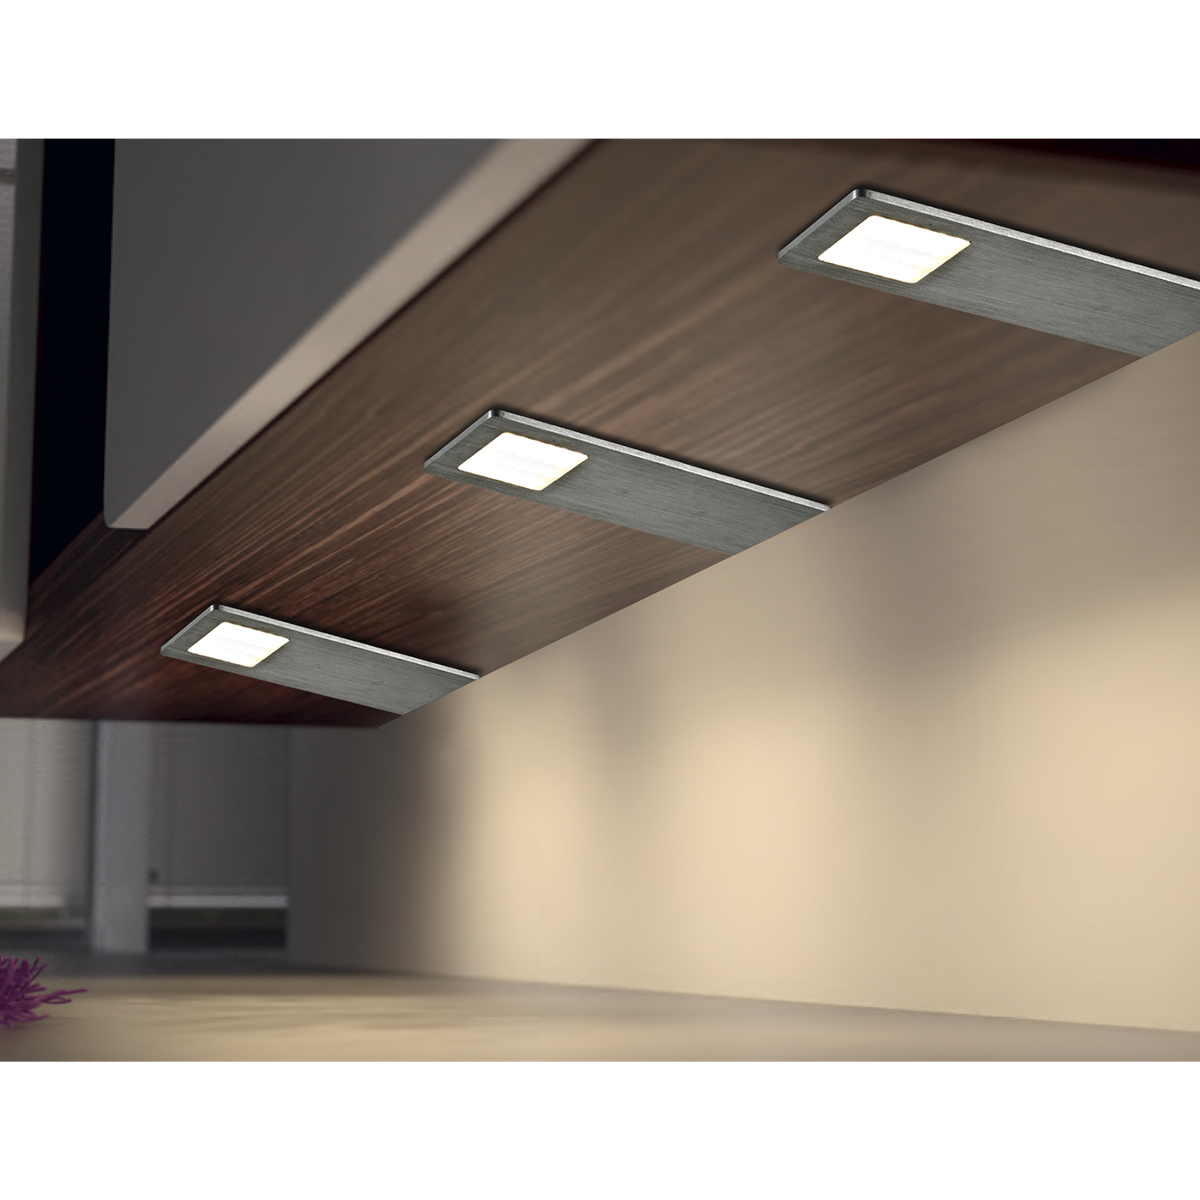 Super Slim LED Quadra Under Cabinet Bar Light 2819